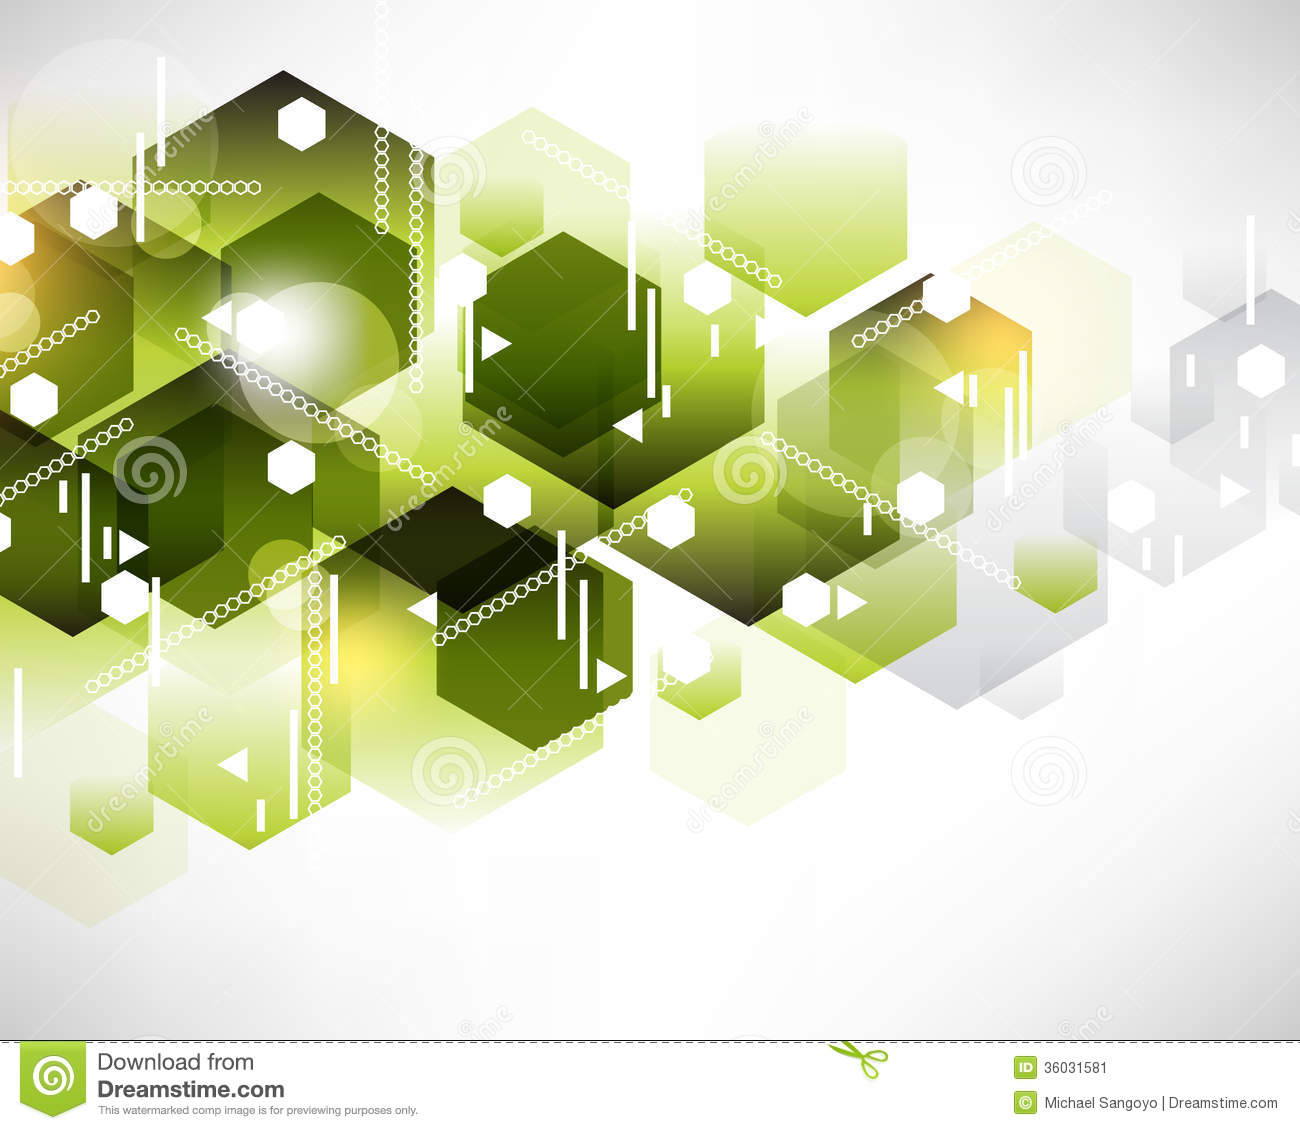 Hexagon Pattern Background Design Stock Image - Image: 36031581